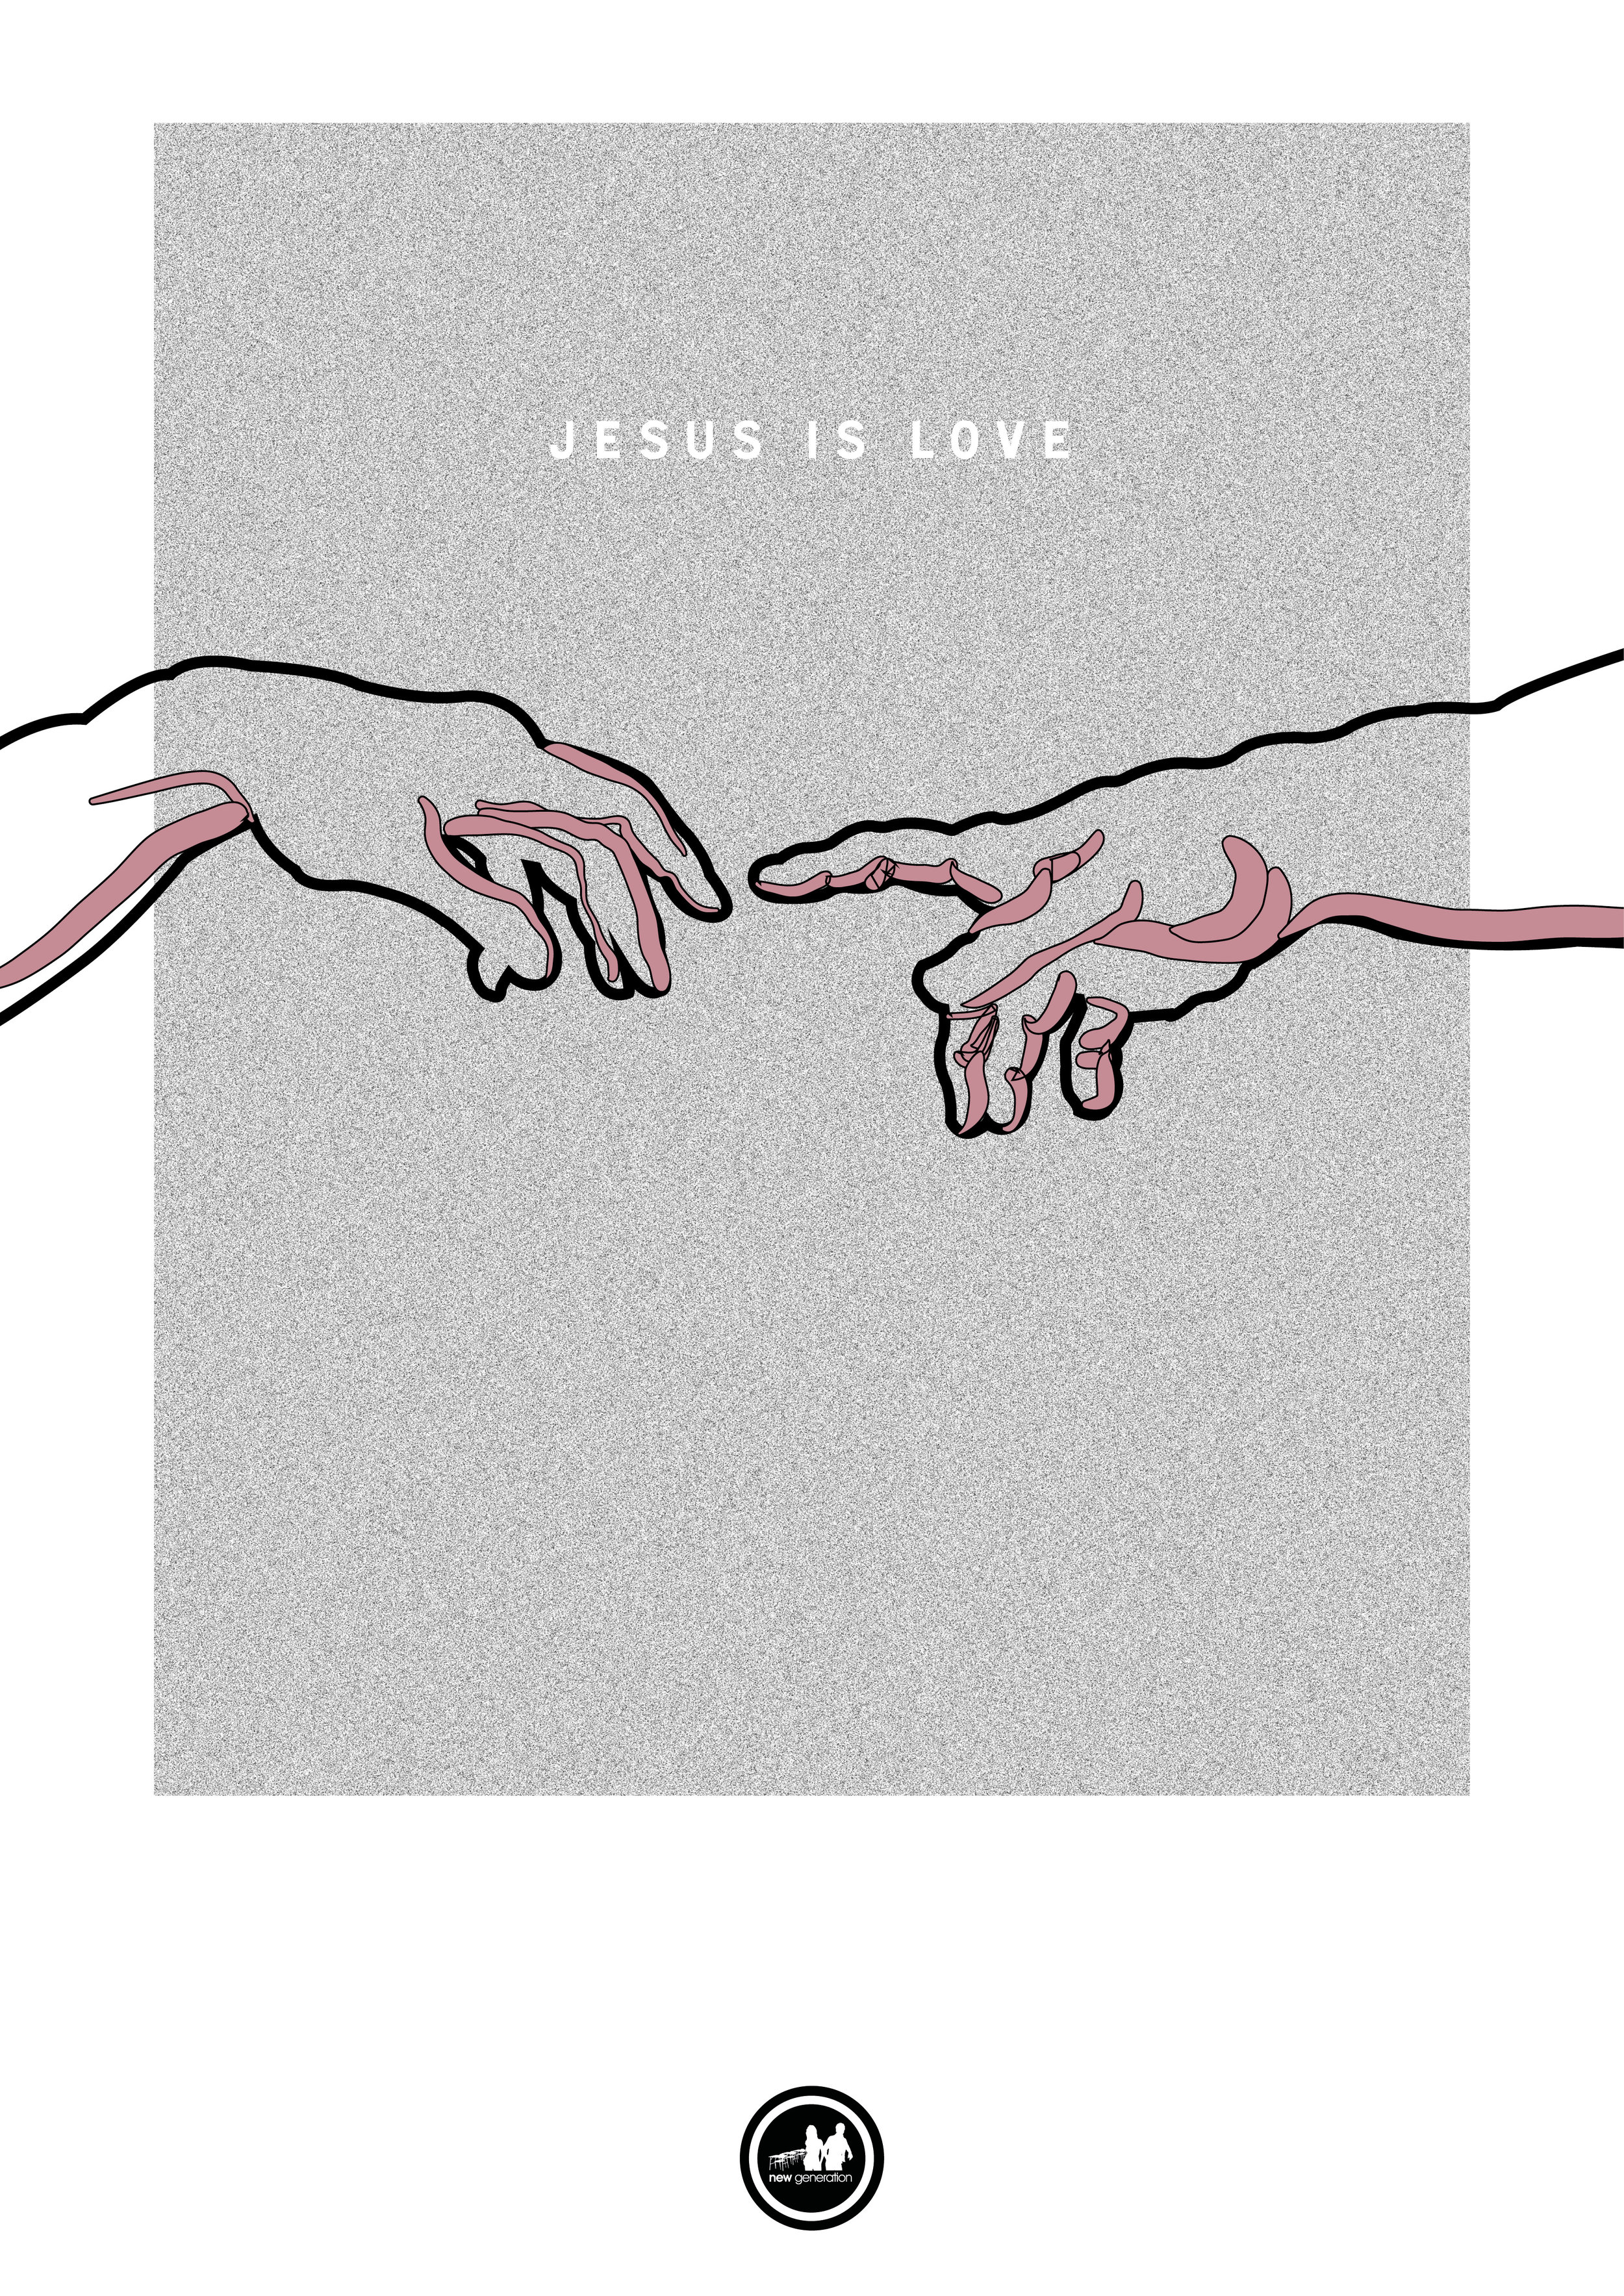 jesus_is_love.jpg